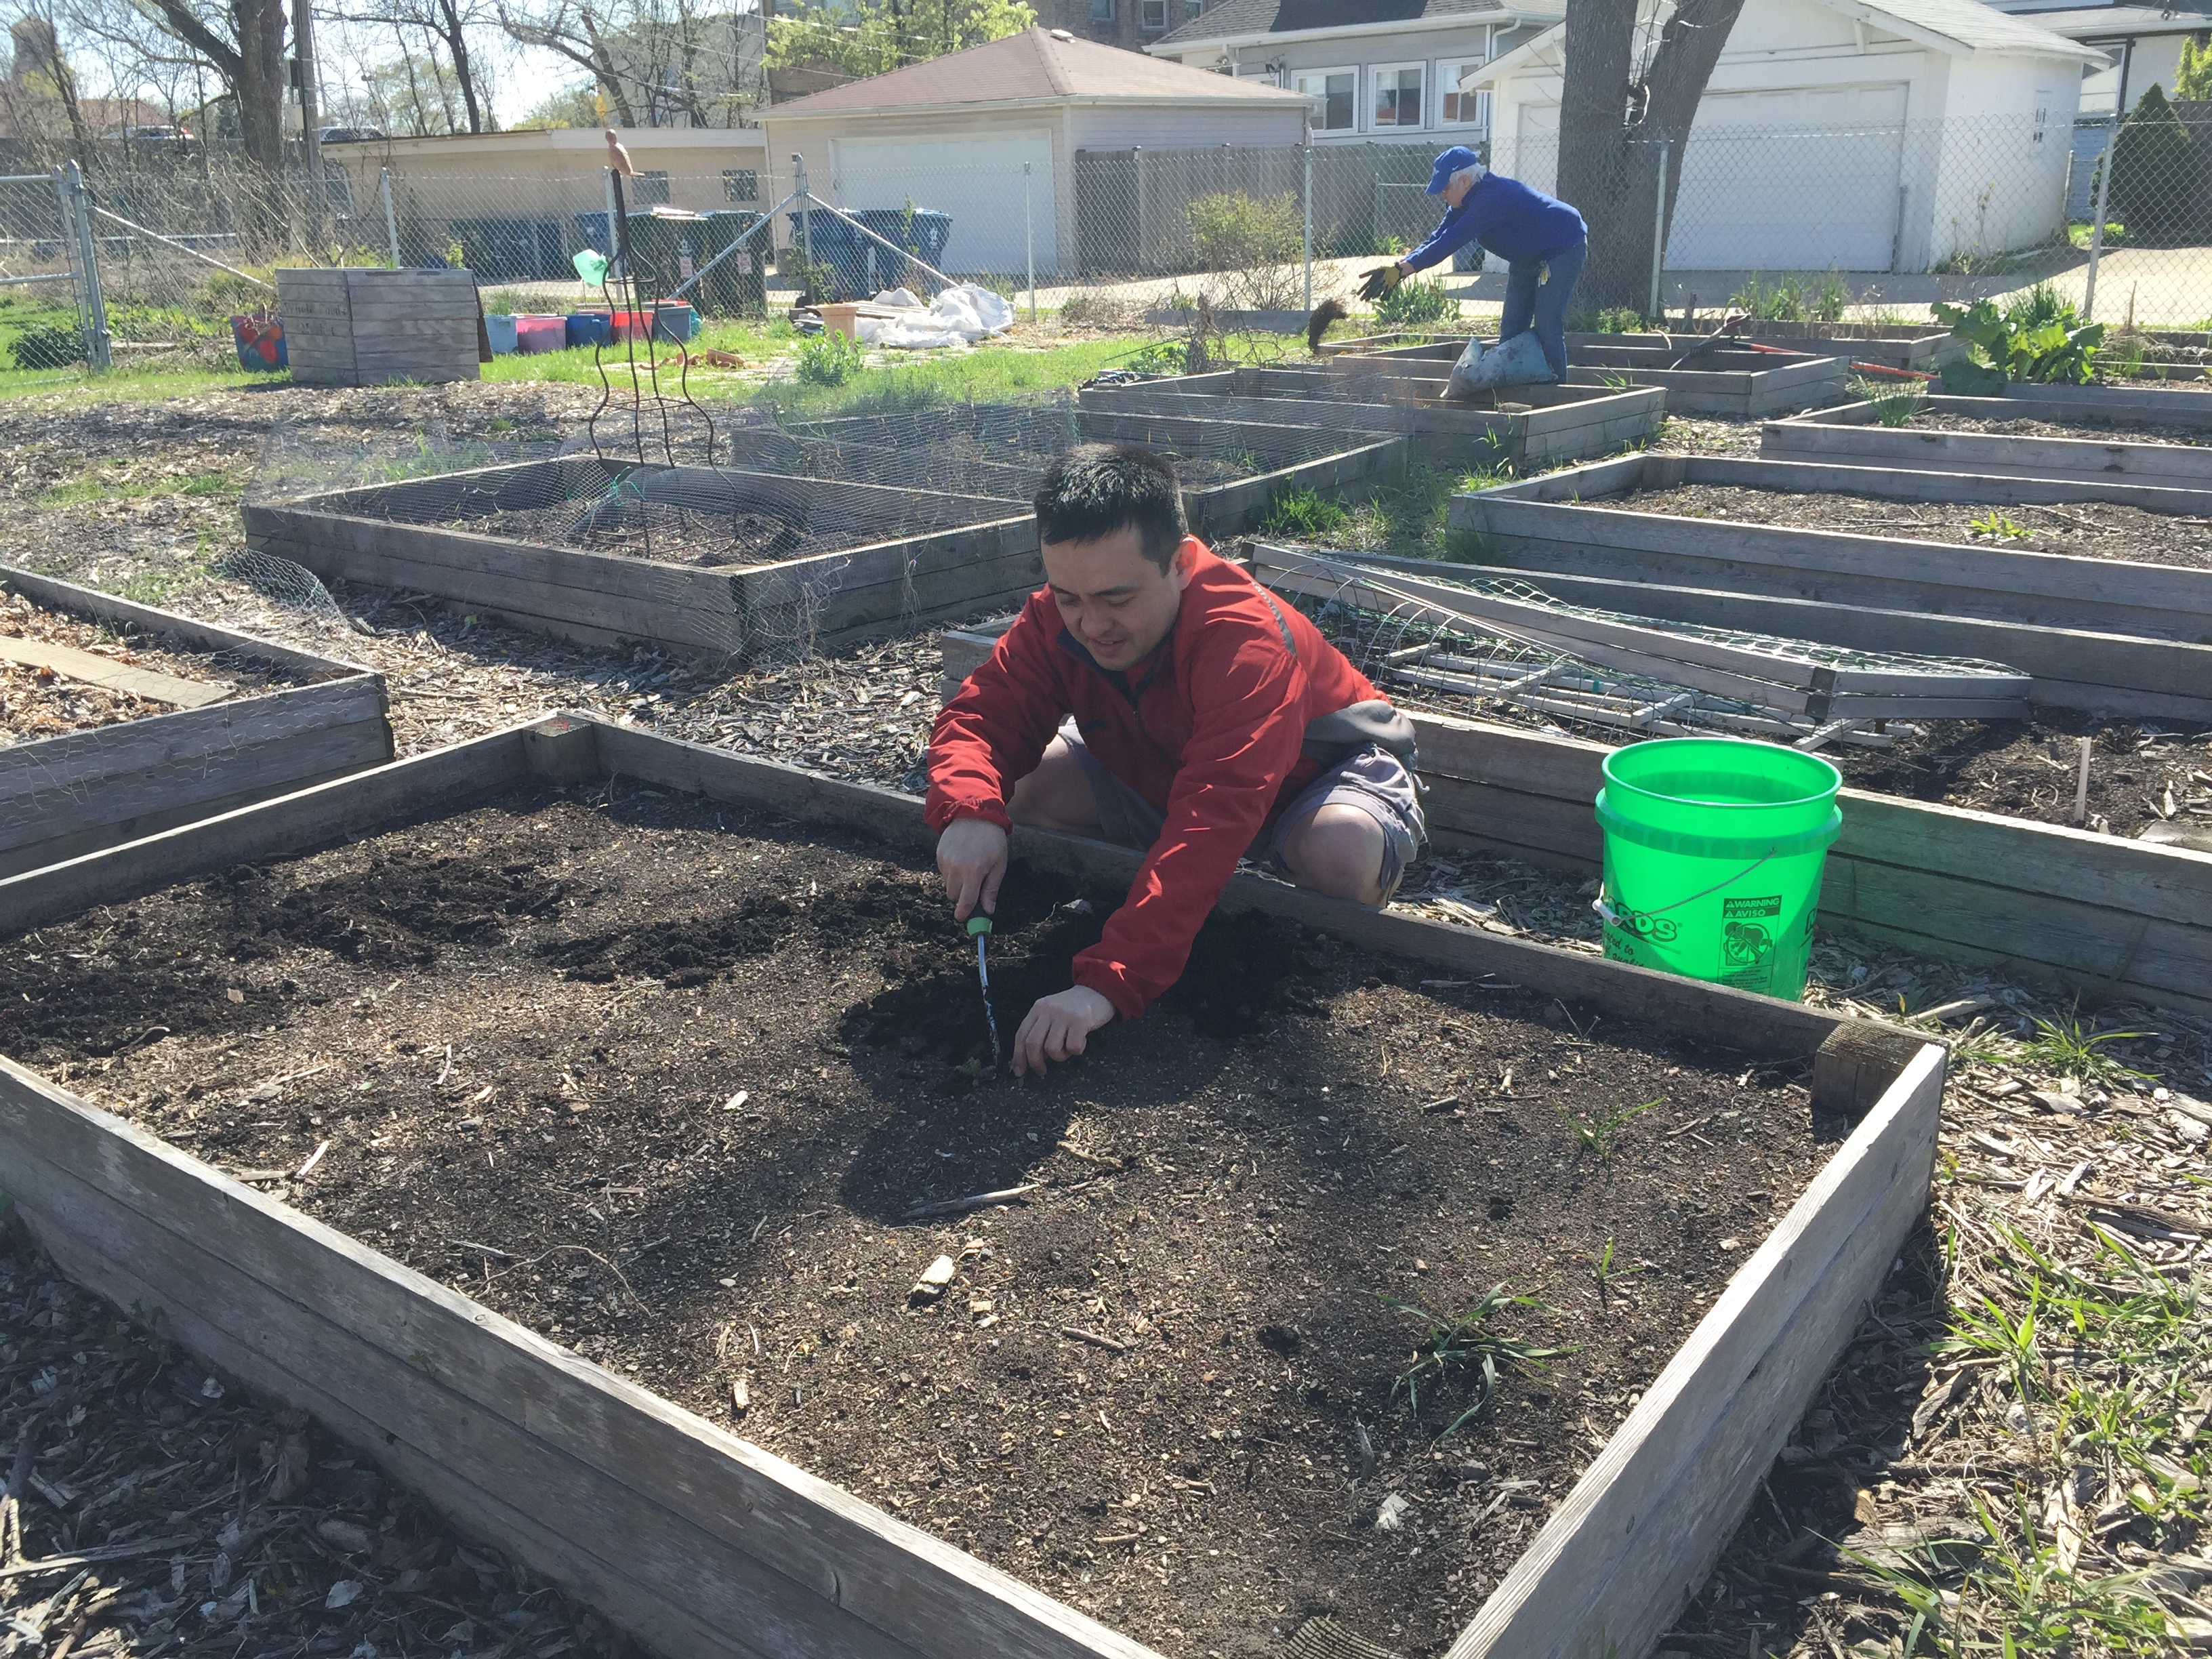 plot #6, forest park community garden,weeding